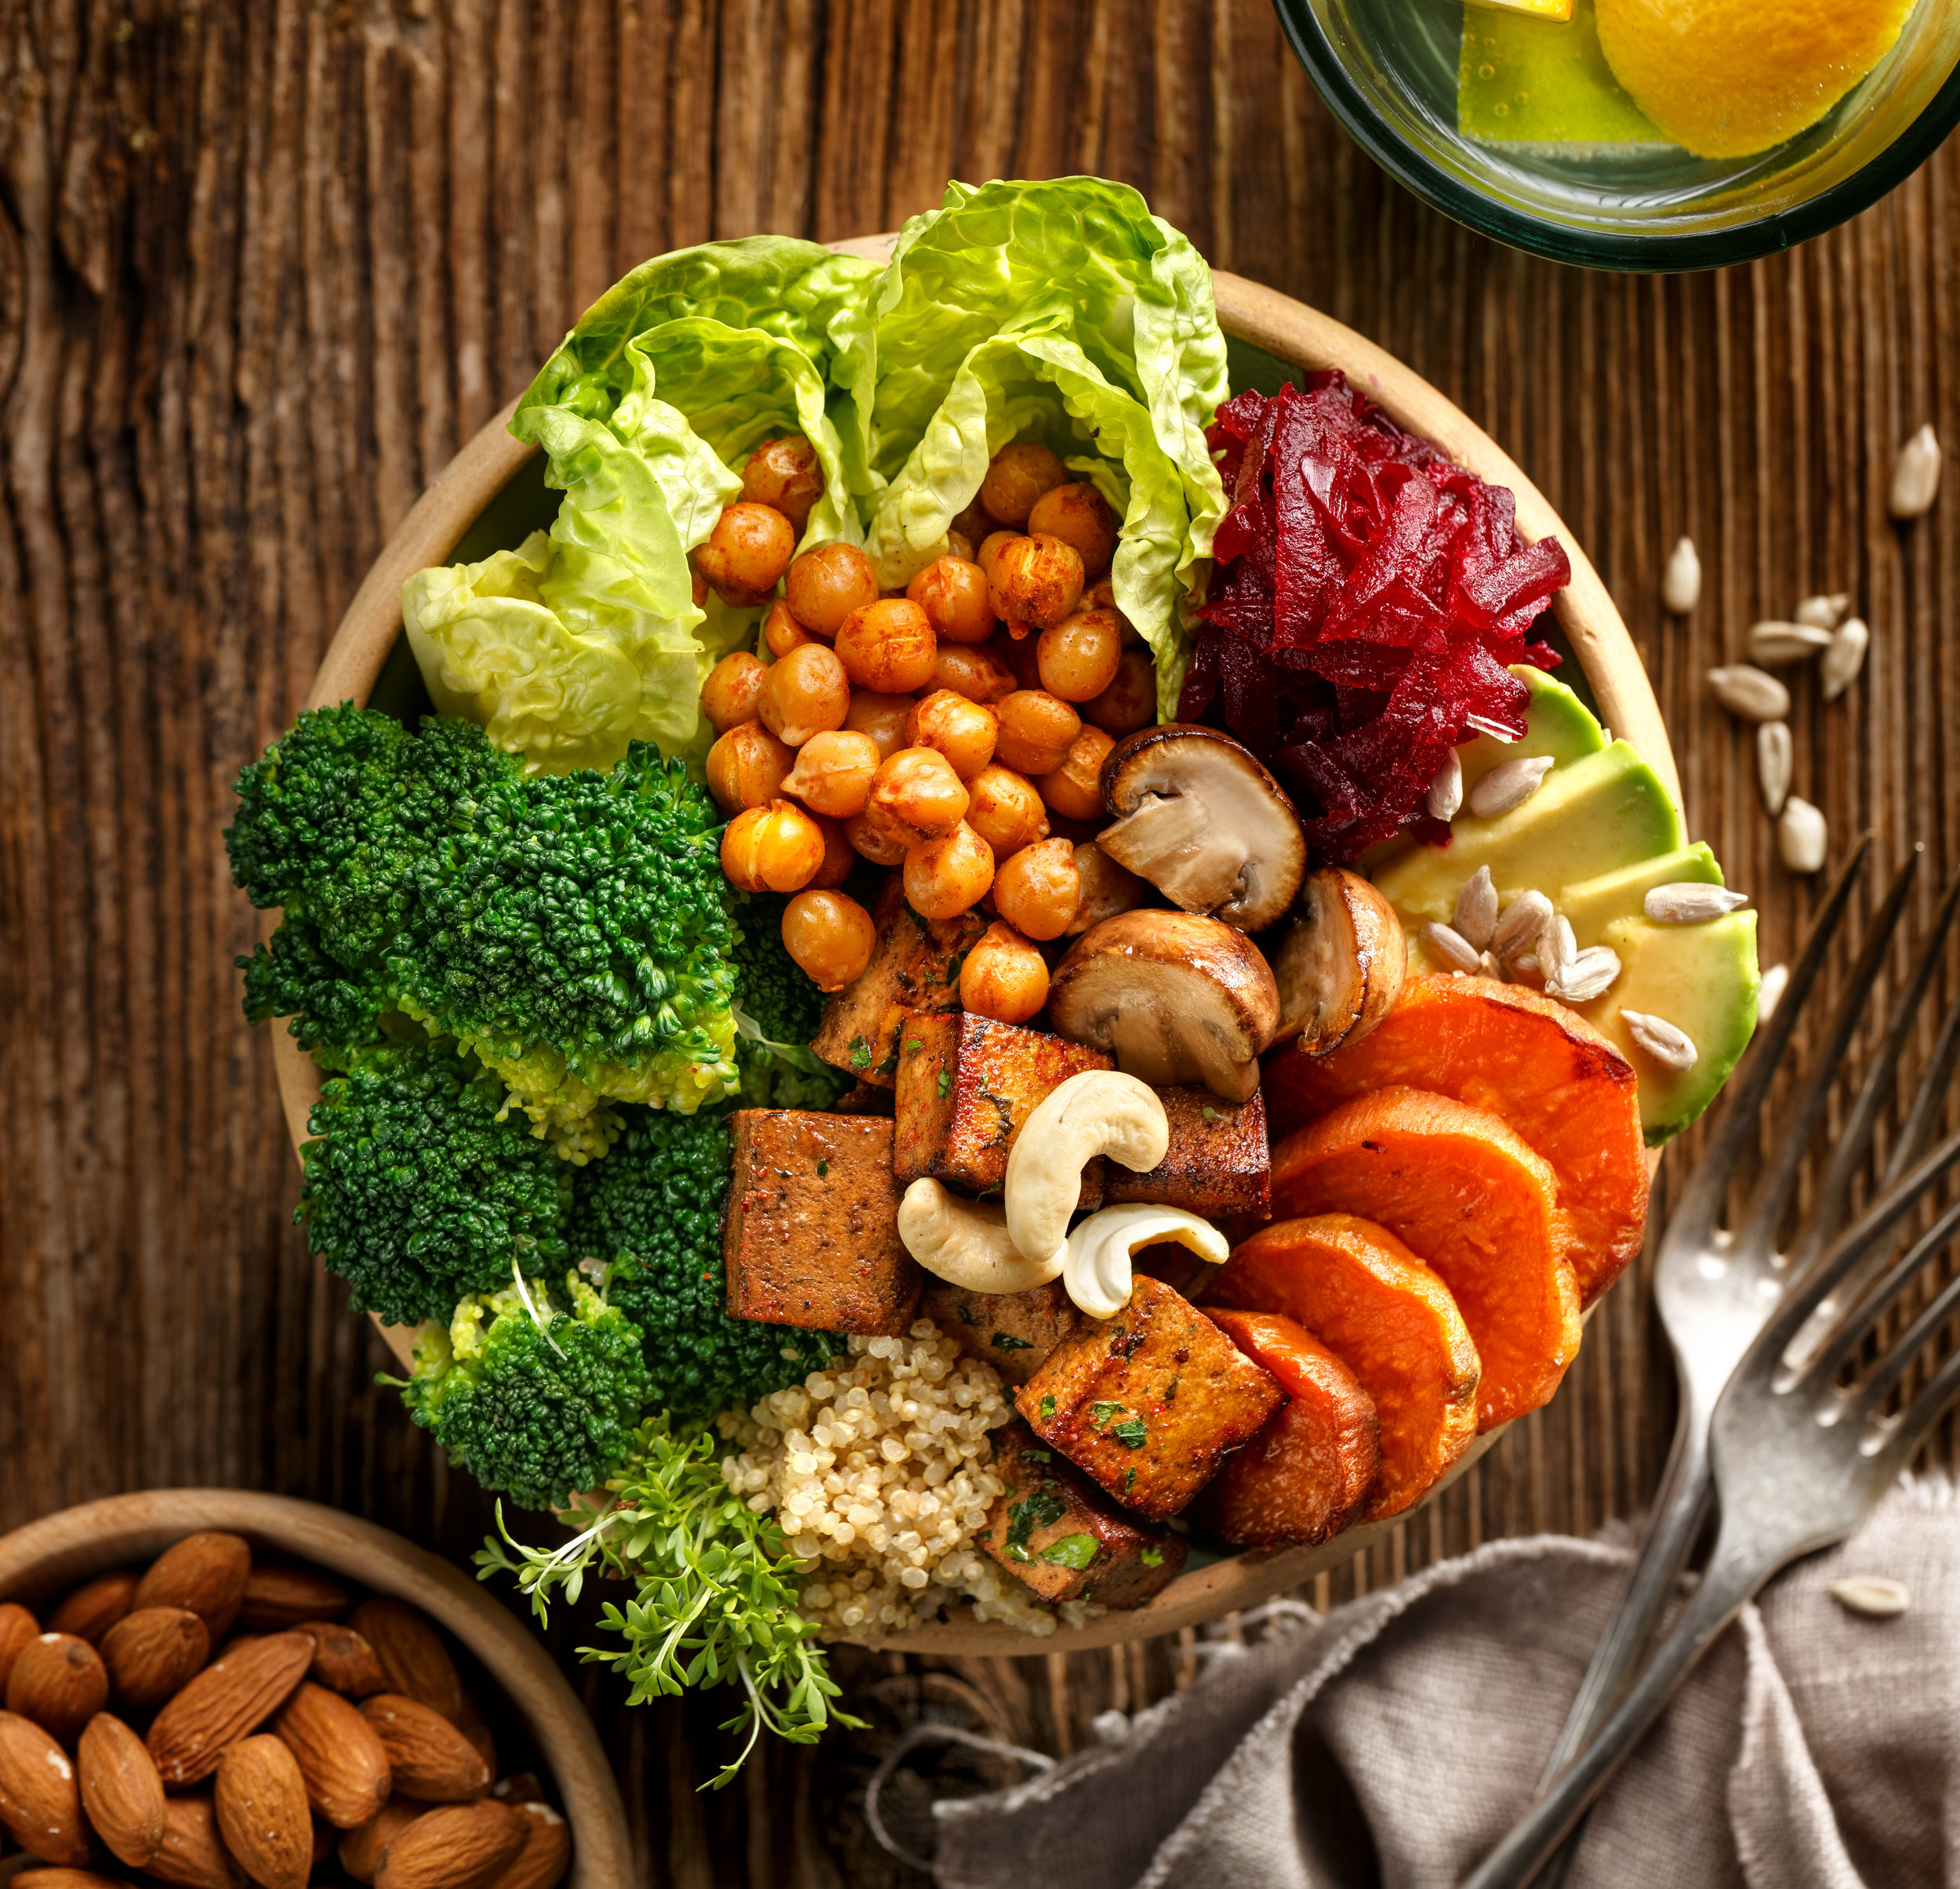 You can get an abundance of protein from vegan sources such as pulses, whole grains, tofu, vegetables, nuts and seeds - plus they come with countless health benefits